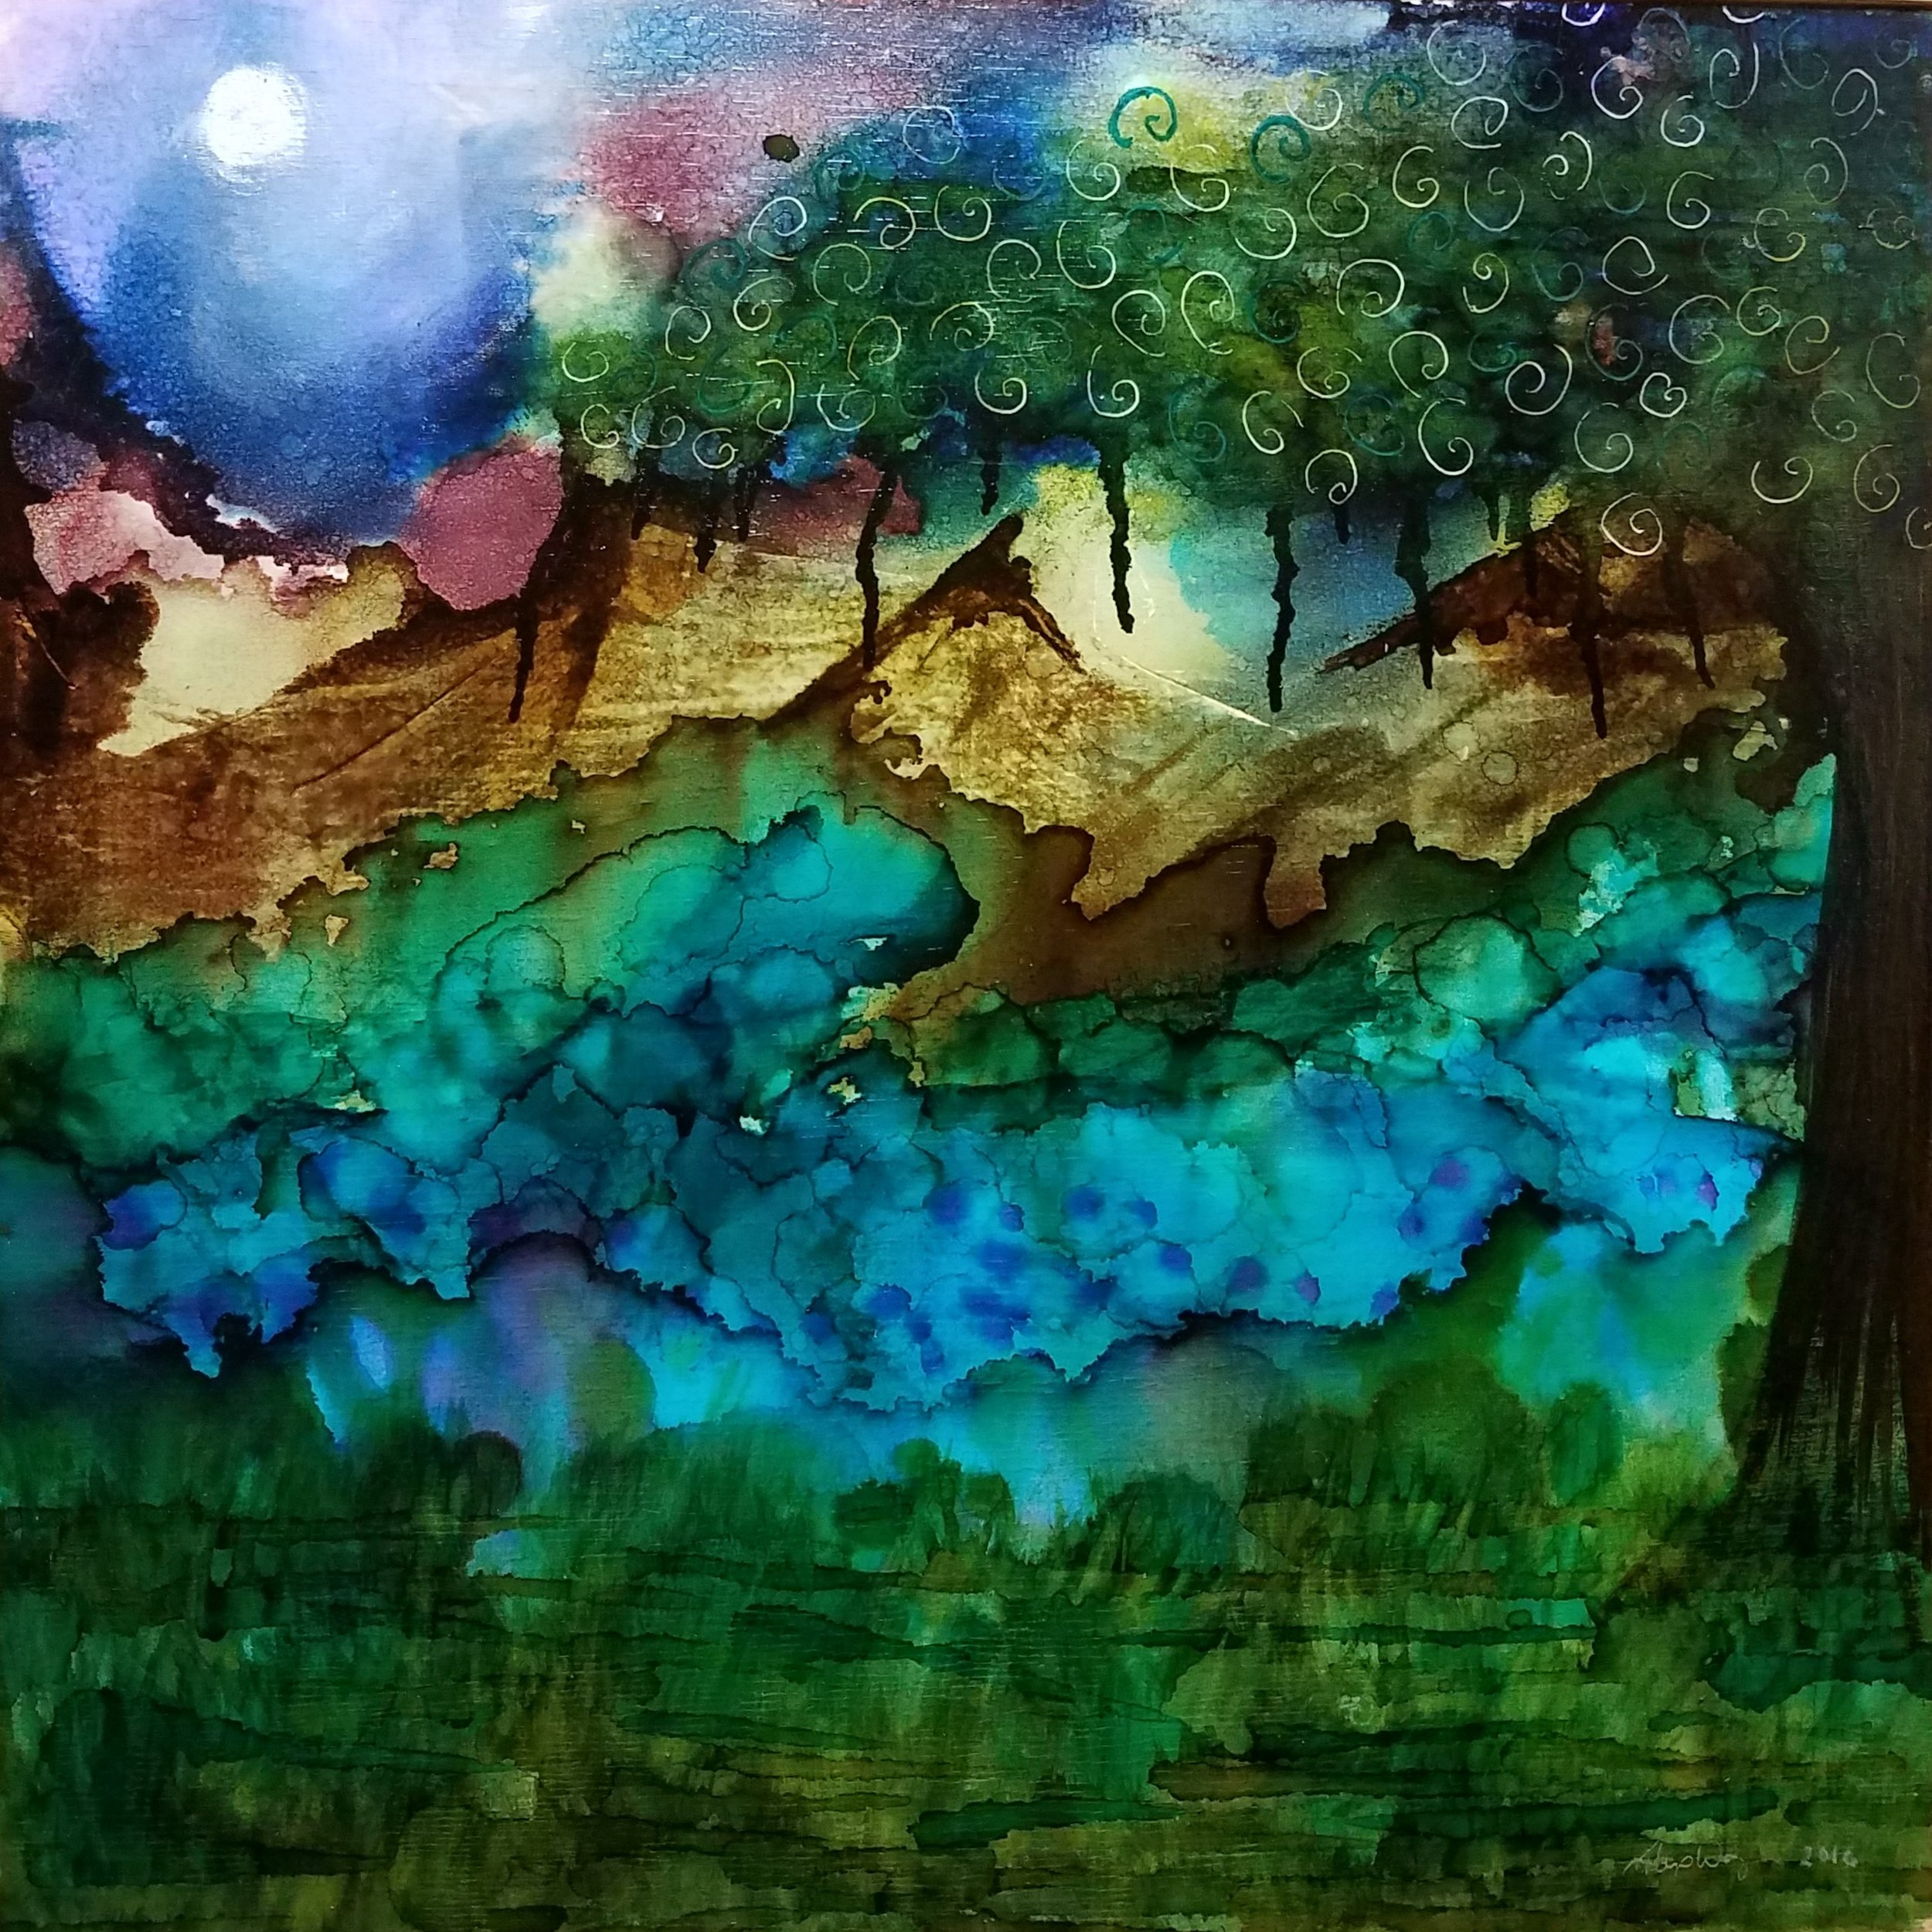 Nightscape#1  I used my new favorite medium to create 3 small pieces for our local galleries Petite Painting sale just before Christmas. This sparked an interest in Alcohol Ink class at the Oxford Arts Alliance. I began teaching adult classes there in February, teaching ink on tiles and yupo paper. Six months later and and another round of summer camp under my belt, I have started to add  jewelry ,